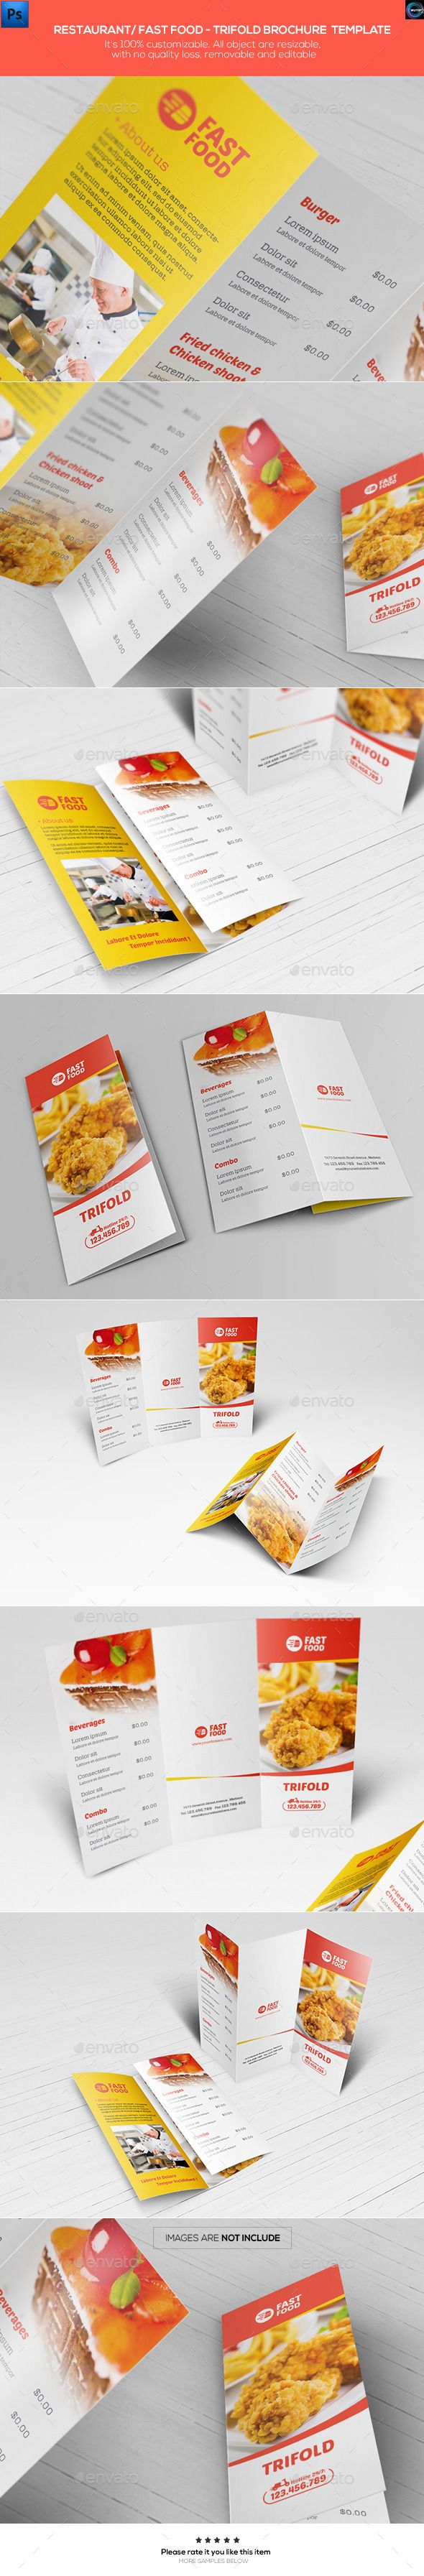 Restaurant/ Fast Food - Trifold Brochure Template | Discover more ...